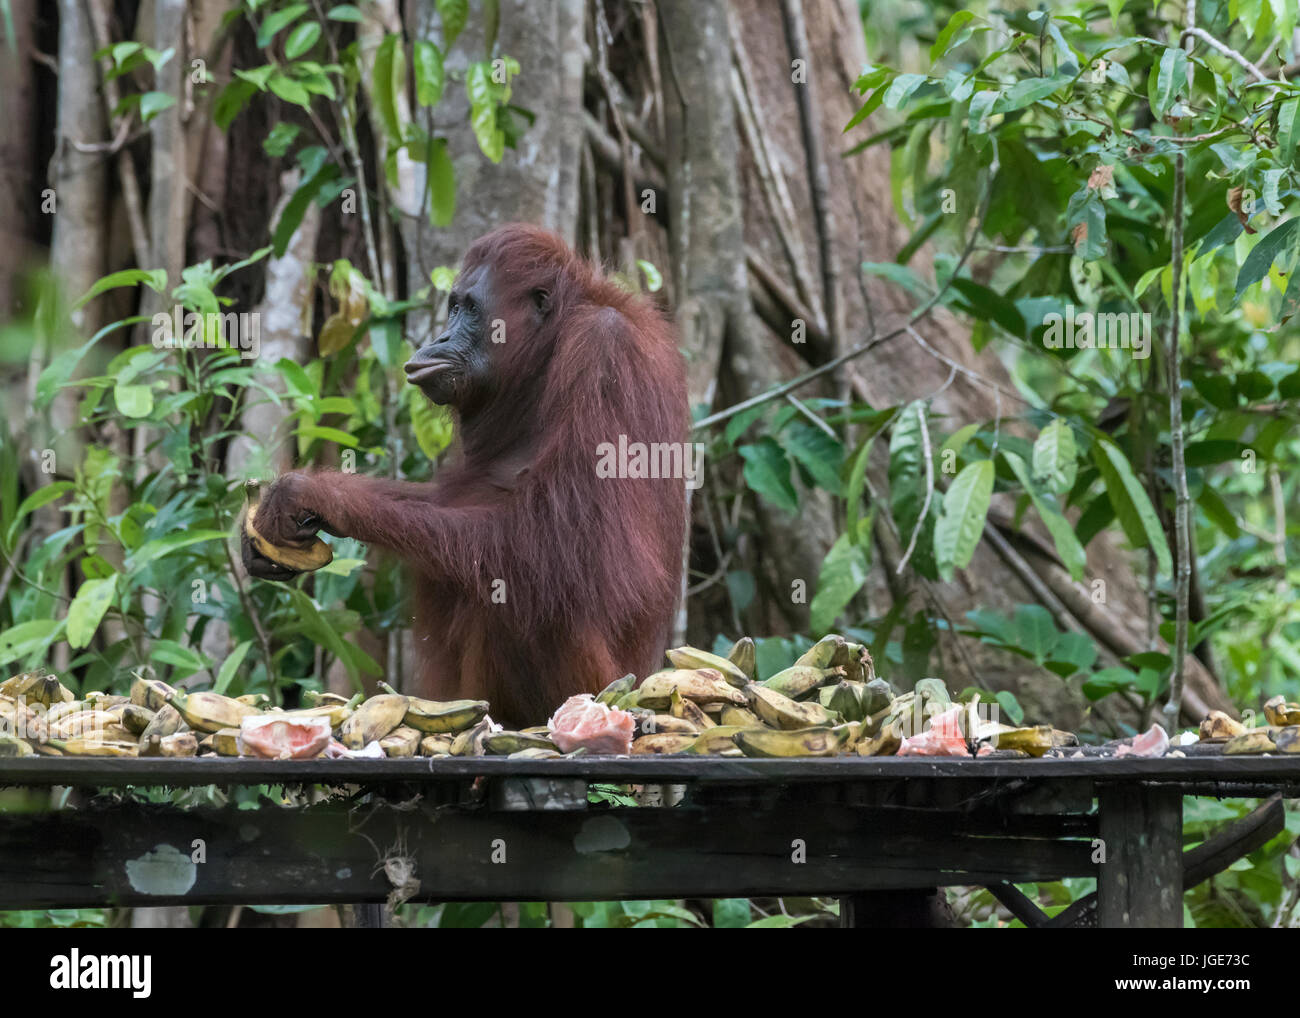 L'orang-outan de l'adolescent à une station d'alimentation, Tanjung Puting NP, Indonésie Photo Stock